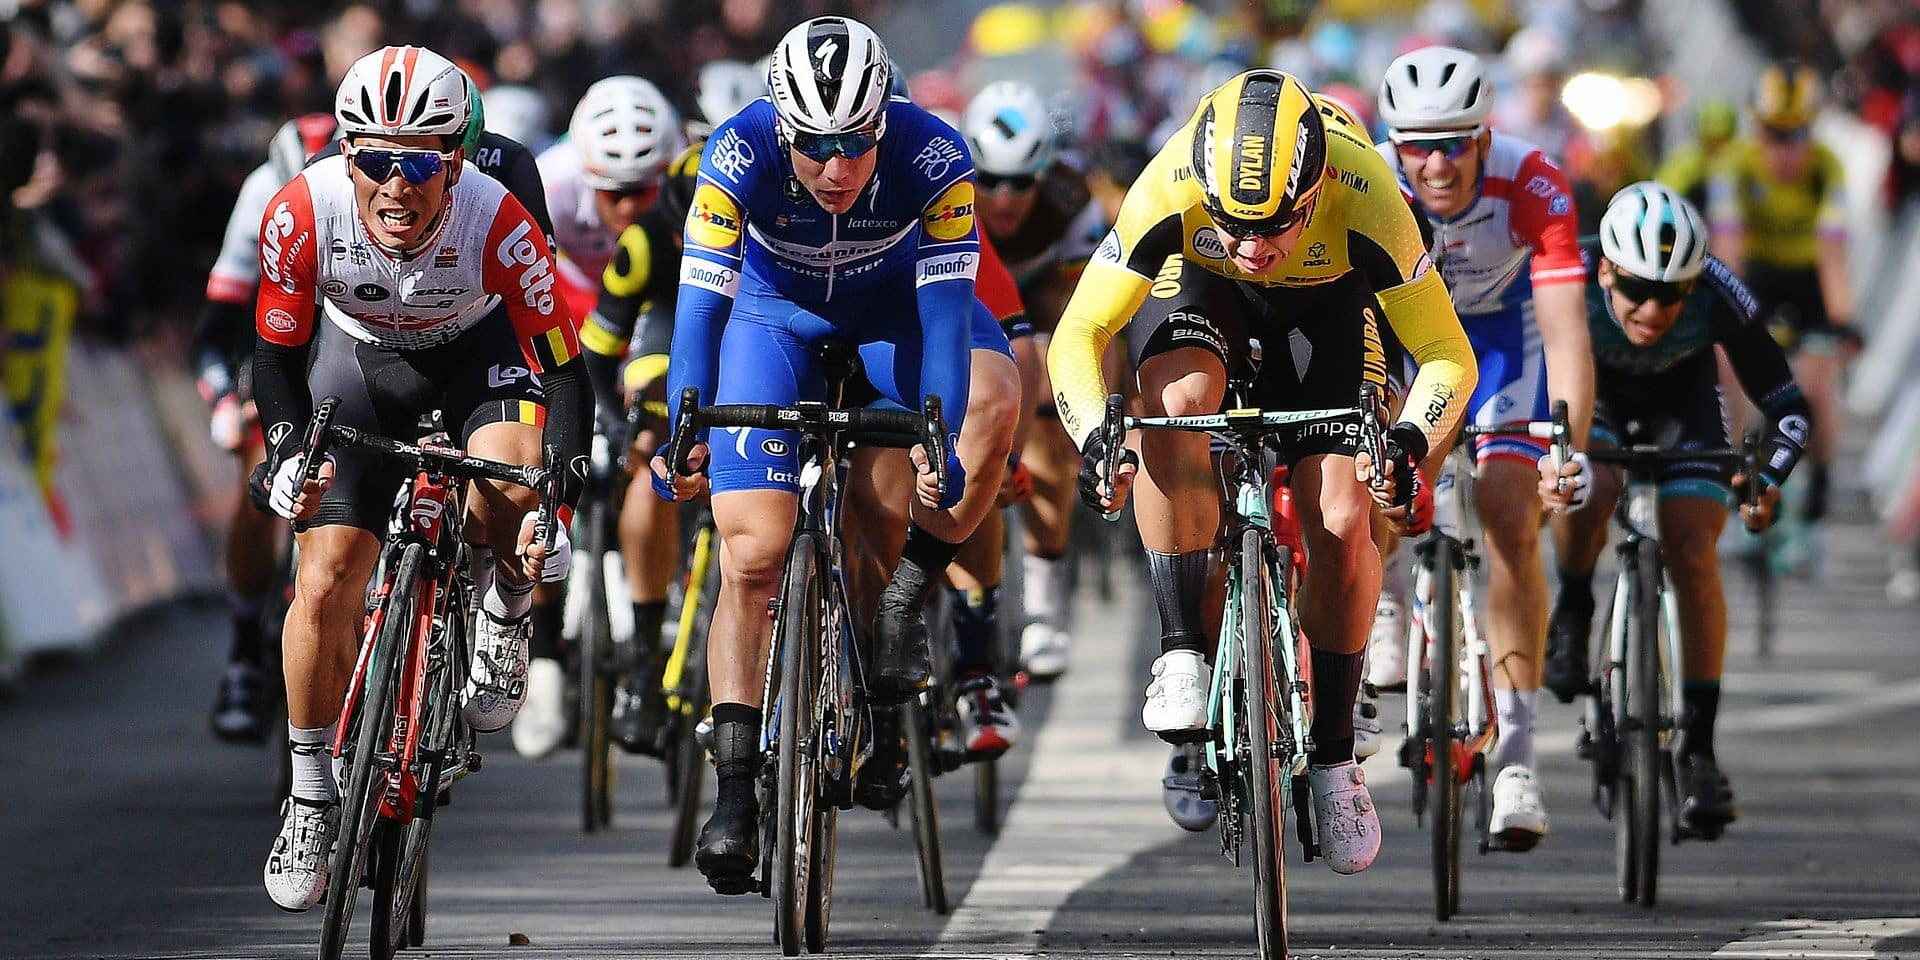 Dutch Dylan Groenewegen of Team Jumbo-Visma (R) wins the sprint ahead of Australian Caleb Ewan of Lotto Soudal (L) and Dutch Fabio Jakobsen of Deceuninck - Quick-Step (C) in the first stage of the 77th edition of Paris-Nice cycling race, 138,5km from Saint-Germain-en-Laye to Saint-Germain-en-Laye, France, Sunday 10 March 2019. The race starts on the 10th and ends on the 17th of March. BELGA PHOTO DAVID STOCKMAN